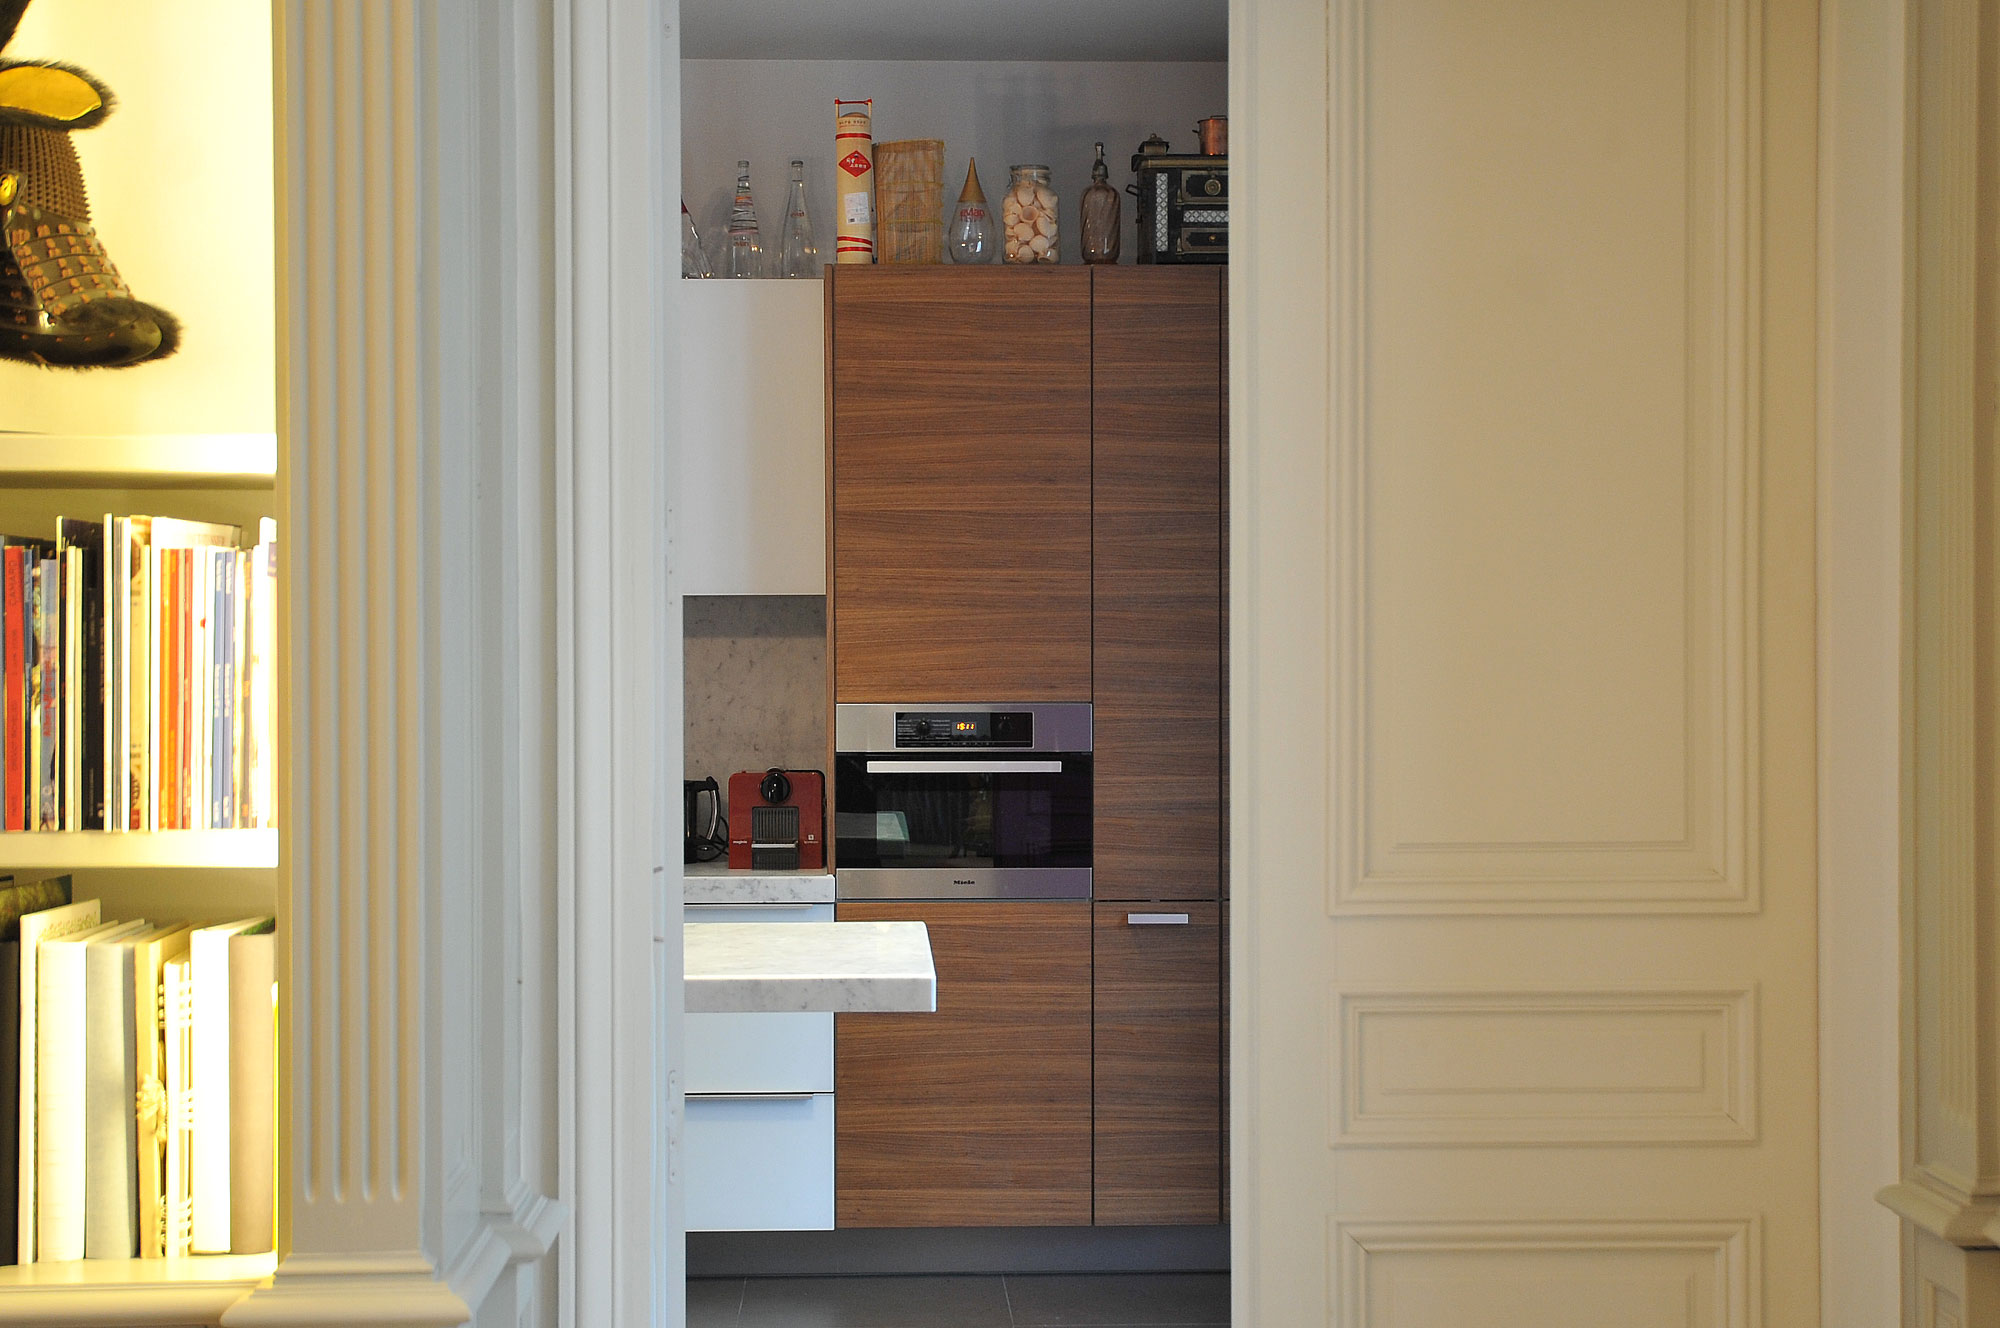 Architecture int rieure appartement haussmannien avec - Placard decor distribution ...